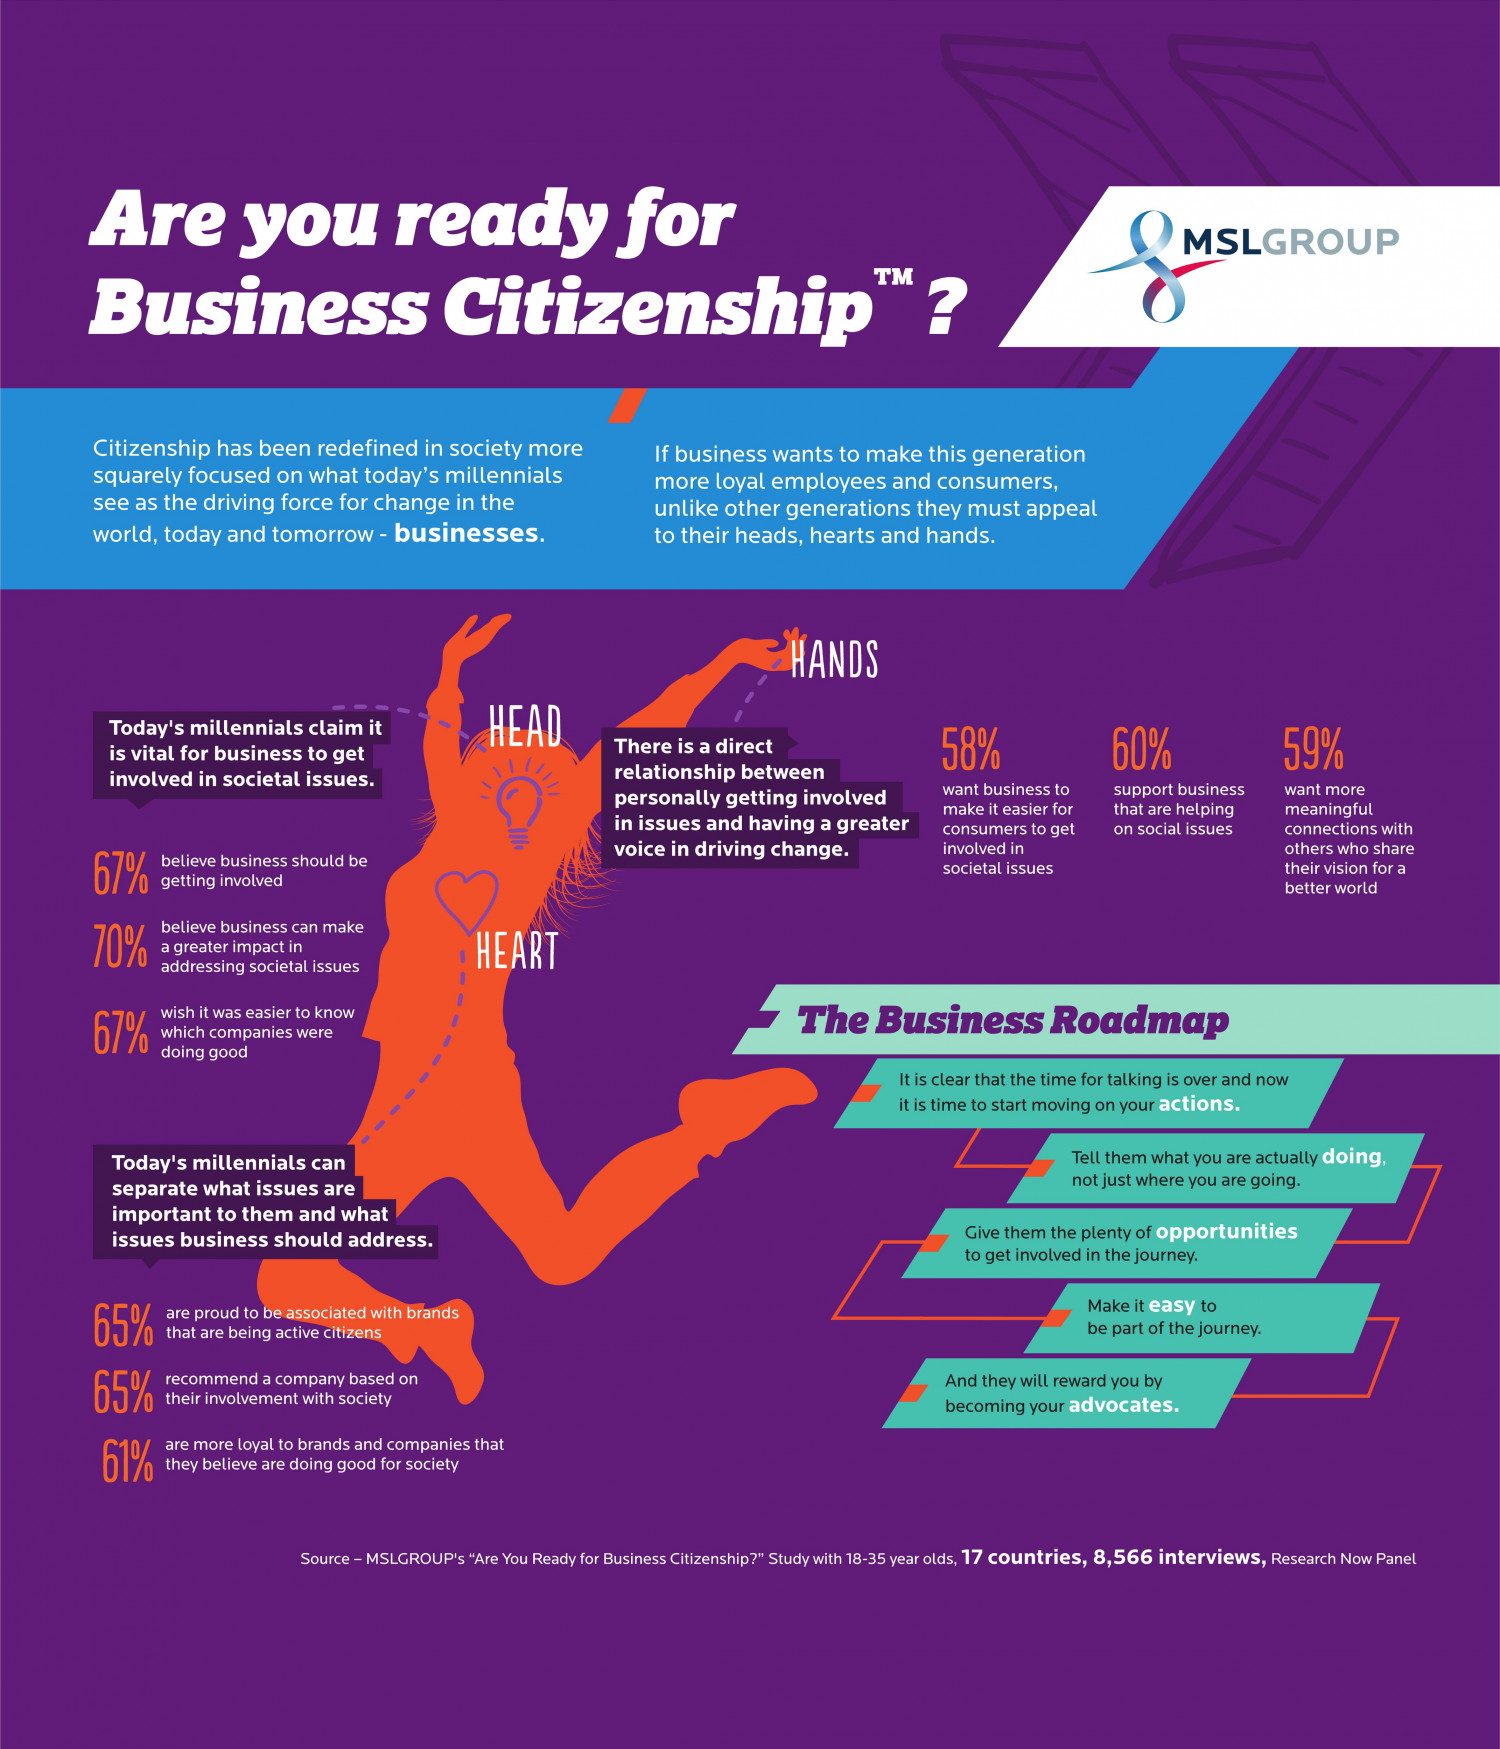 Are You Ready For Business Citizenship? Infographic